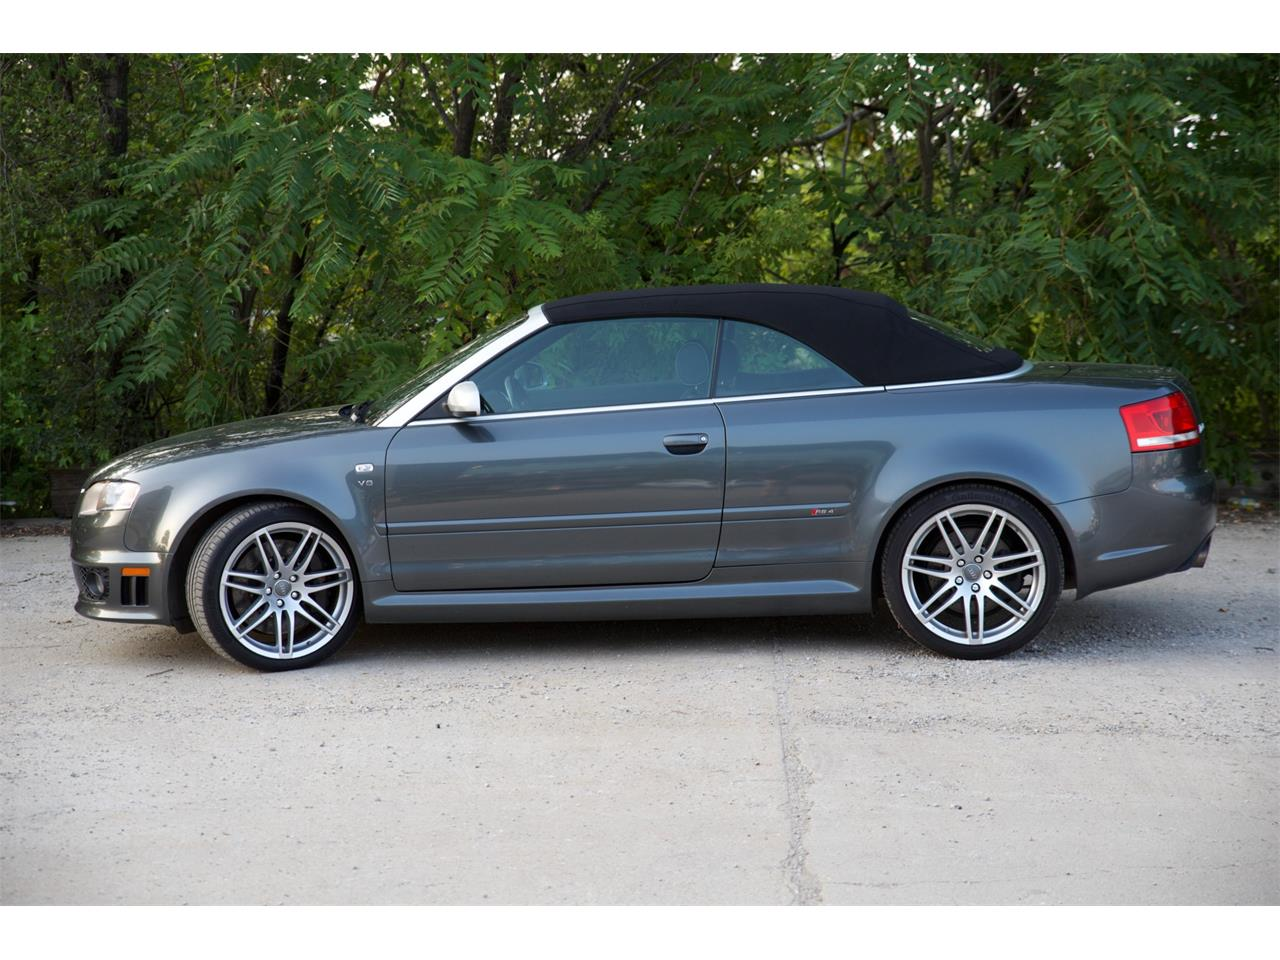 2008 Audi S4 (CC-1257241) for sale in Chicago, Illinois